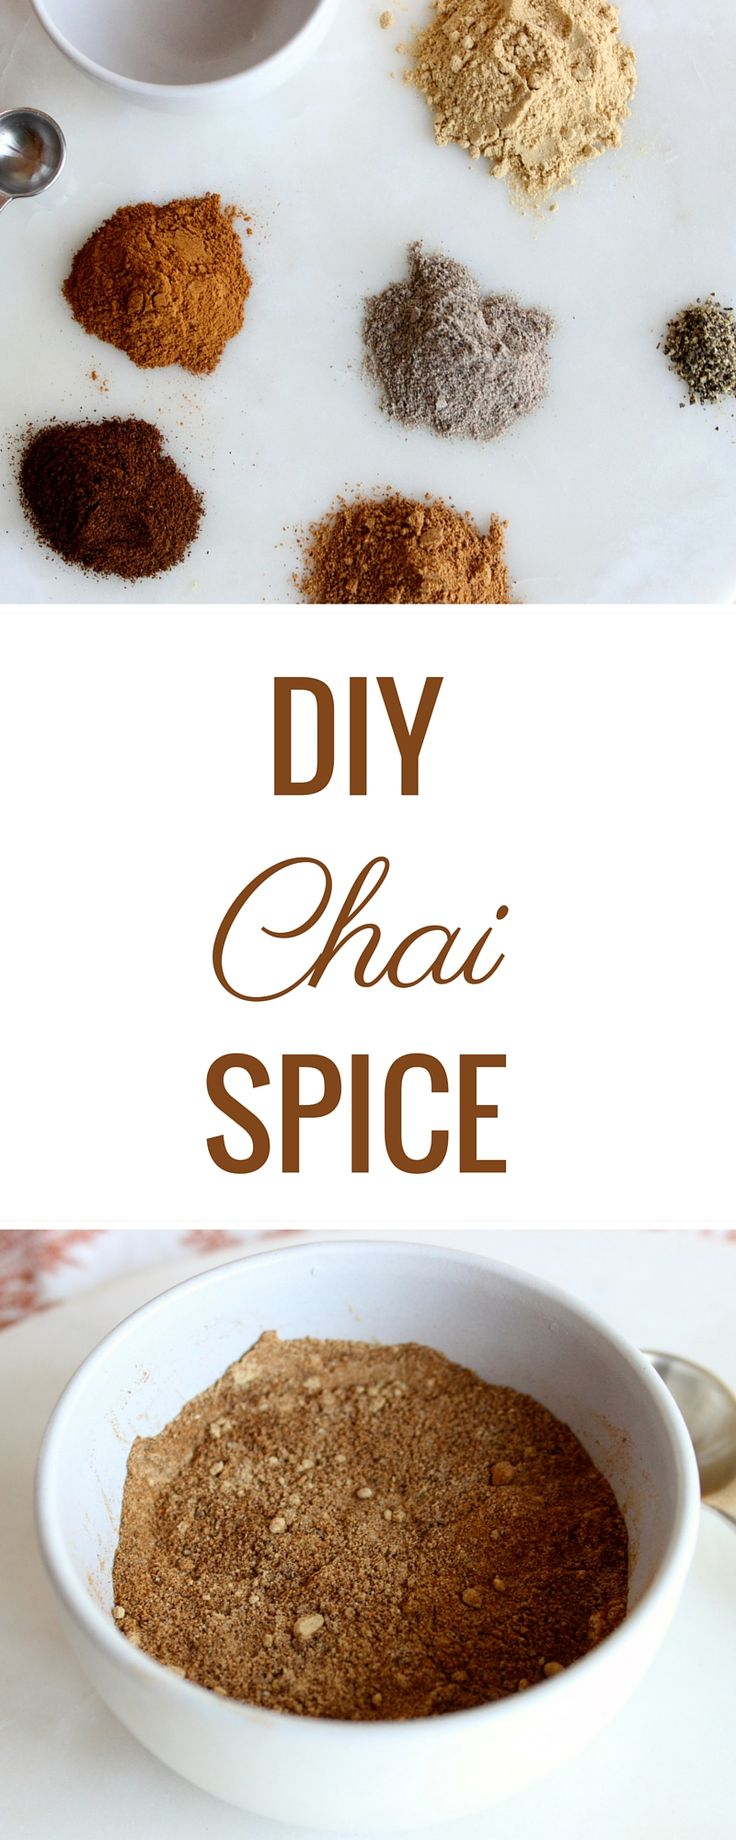 Easy DIY Chai spice blend is perfect to make lattes, oatmeal, yogurt, and more taste like chai!